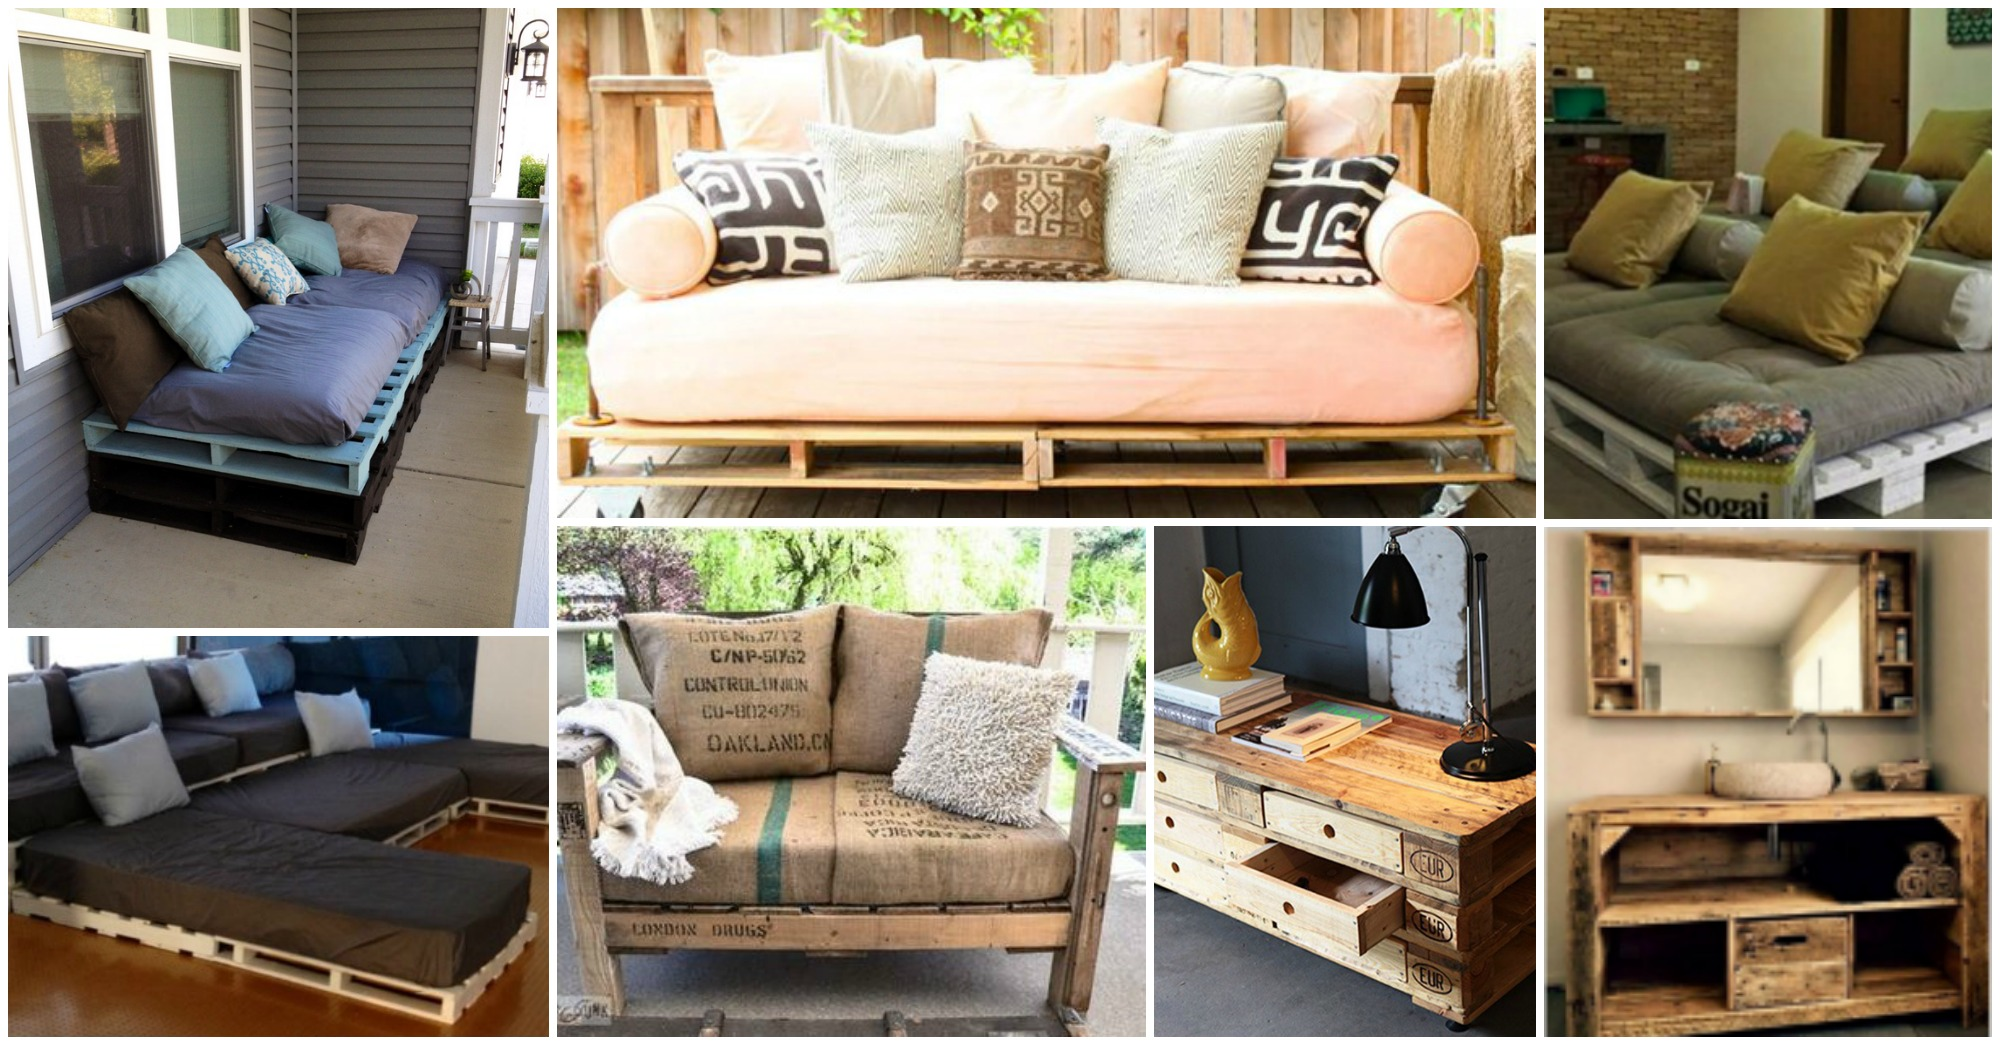 15 Incredibly Clever Pallet Furniture Ideas